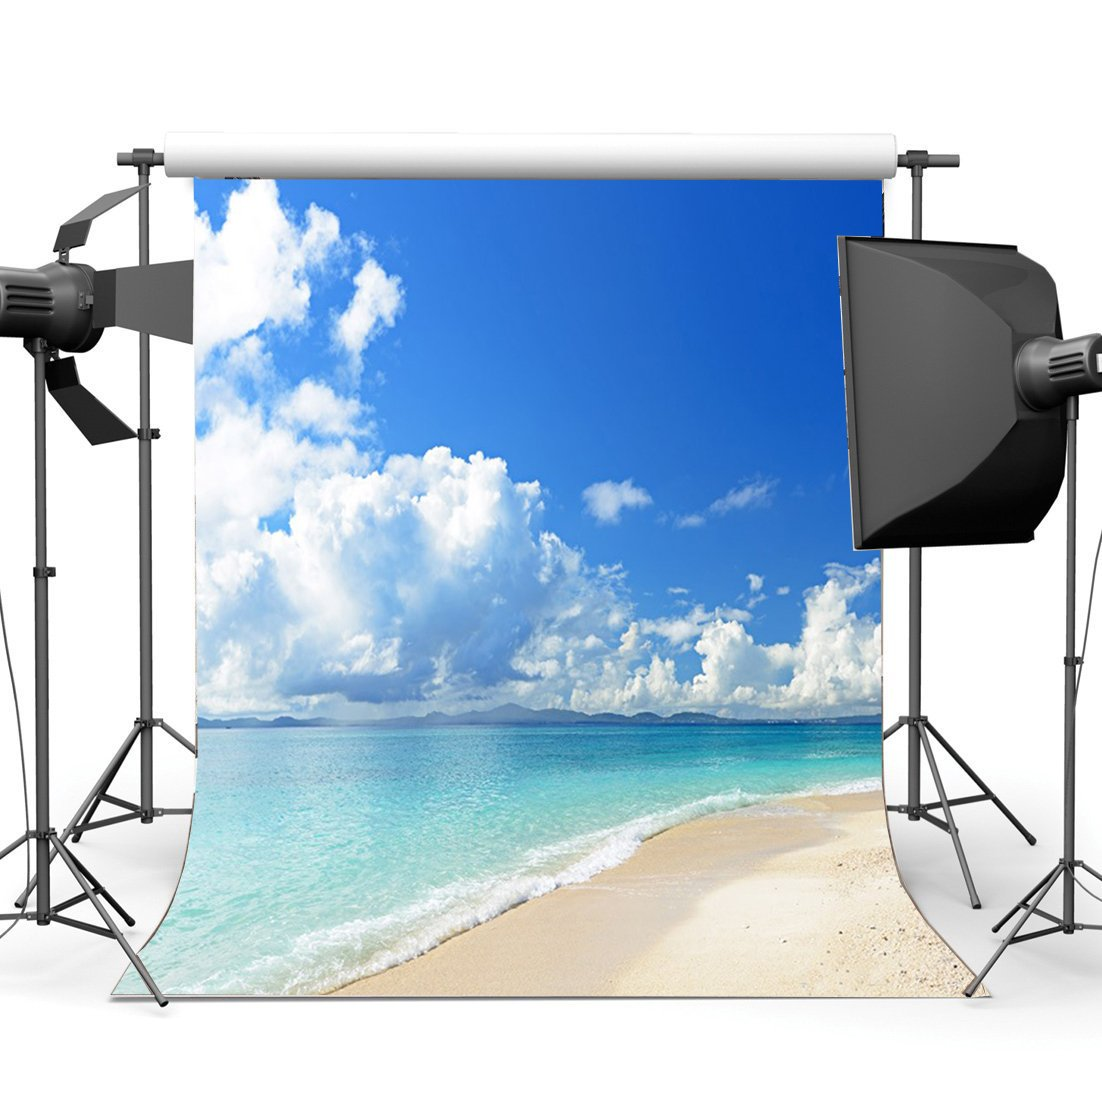 Seaside Sand Beach Backdrop Waves Blue Sky White Cloud Nature Romantic Summer Holiday Journey Ocean Sailing Background-in Photo Studio Accessories from Consumer Electronics